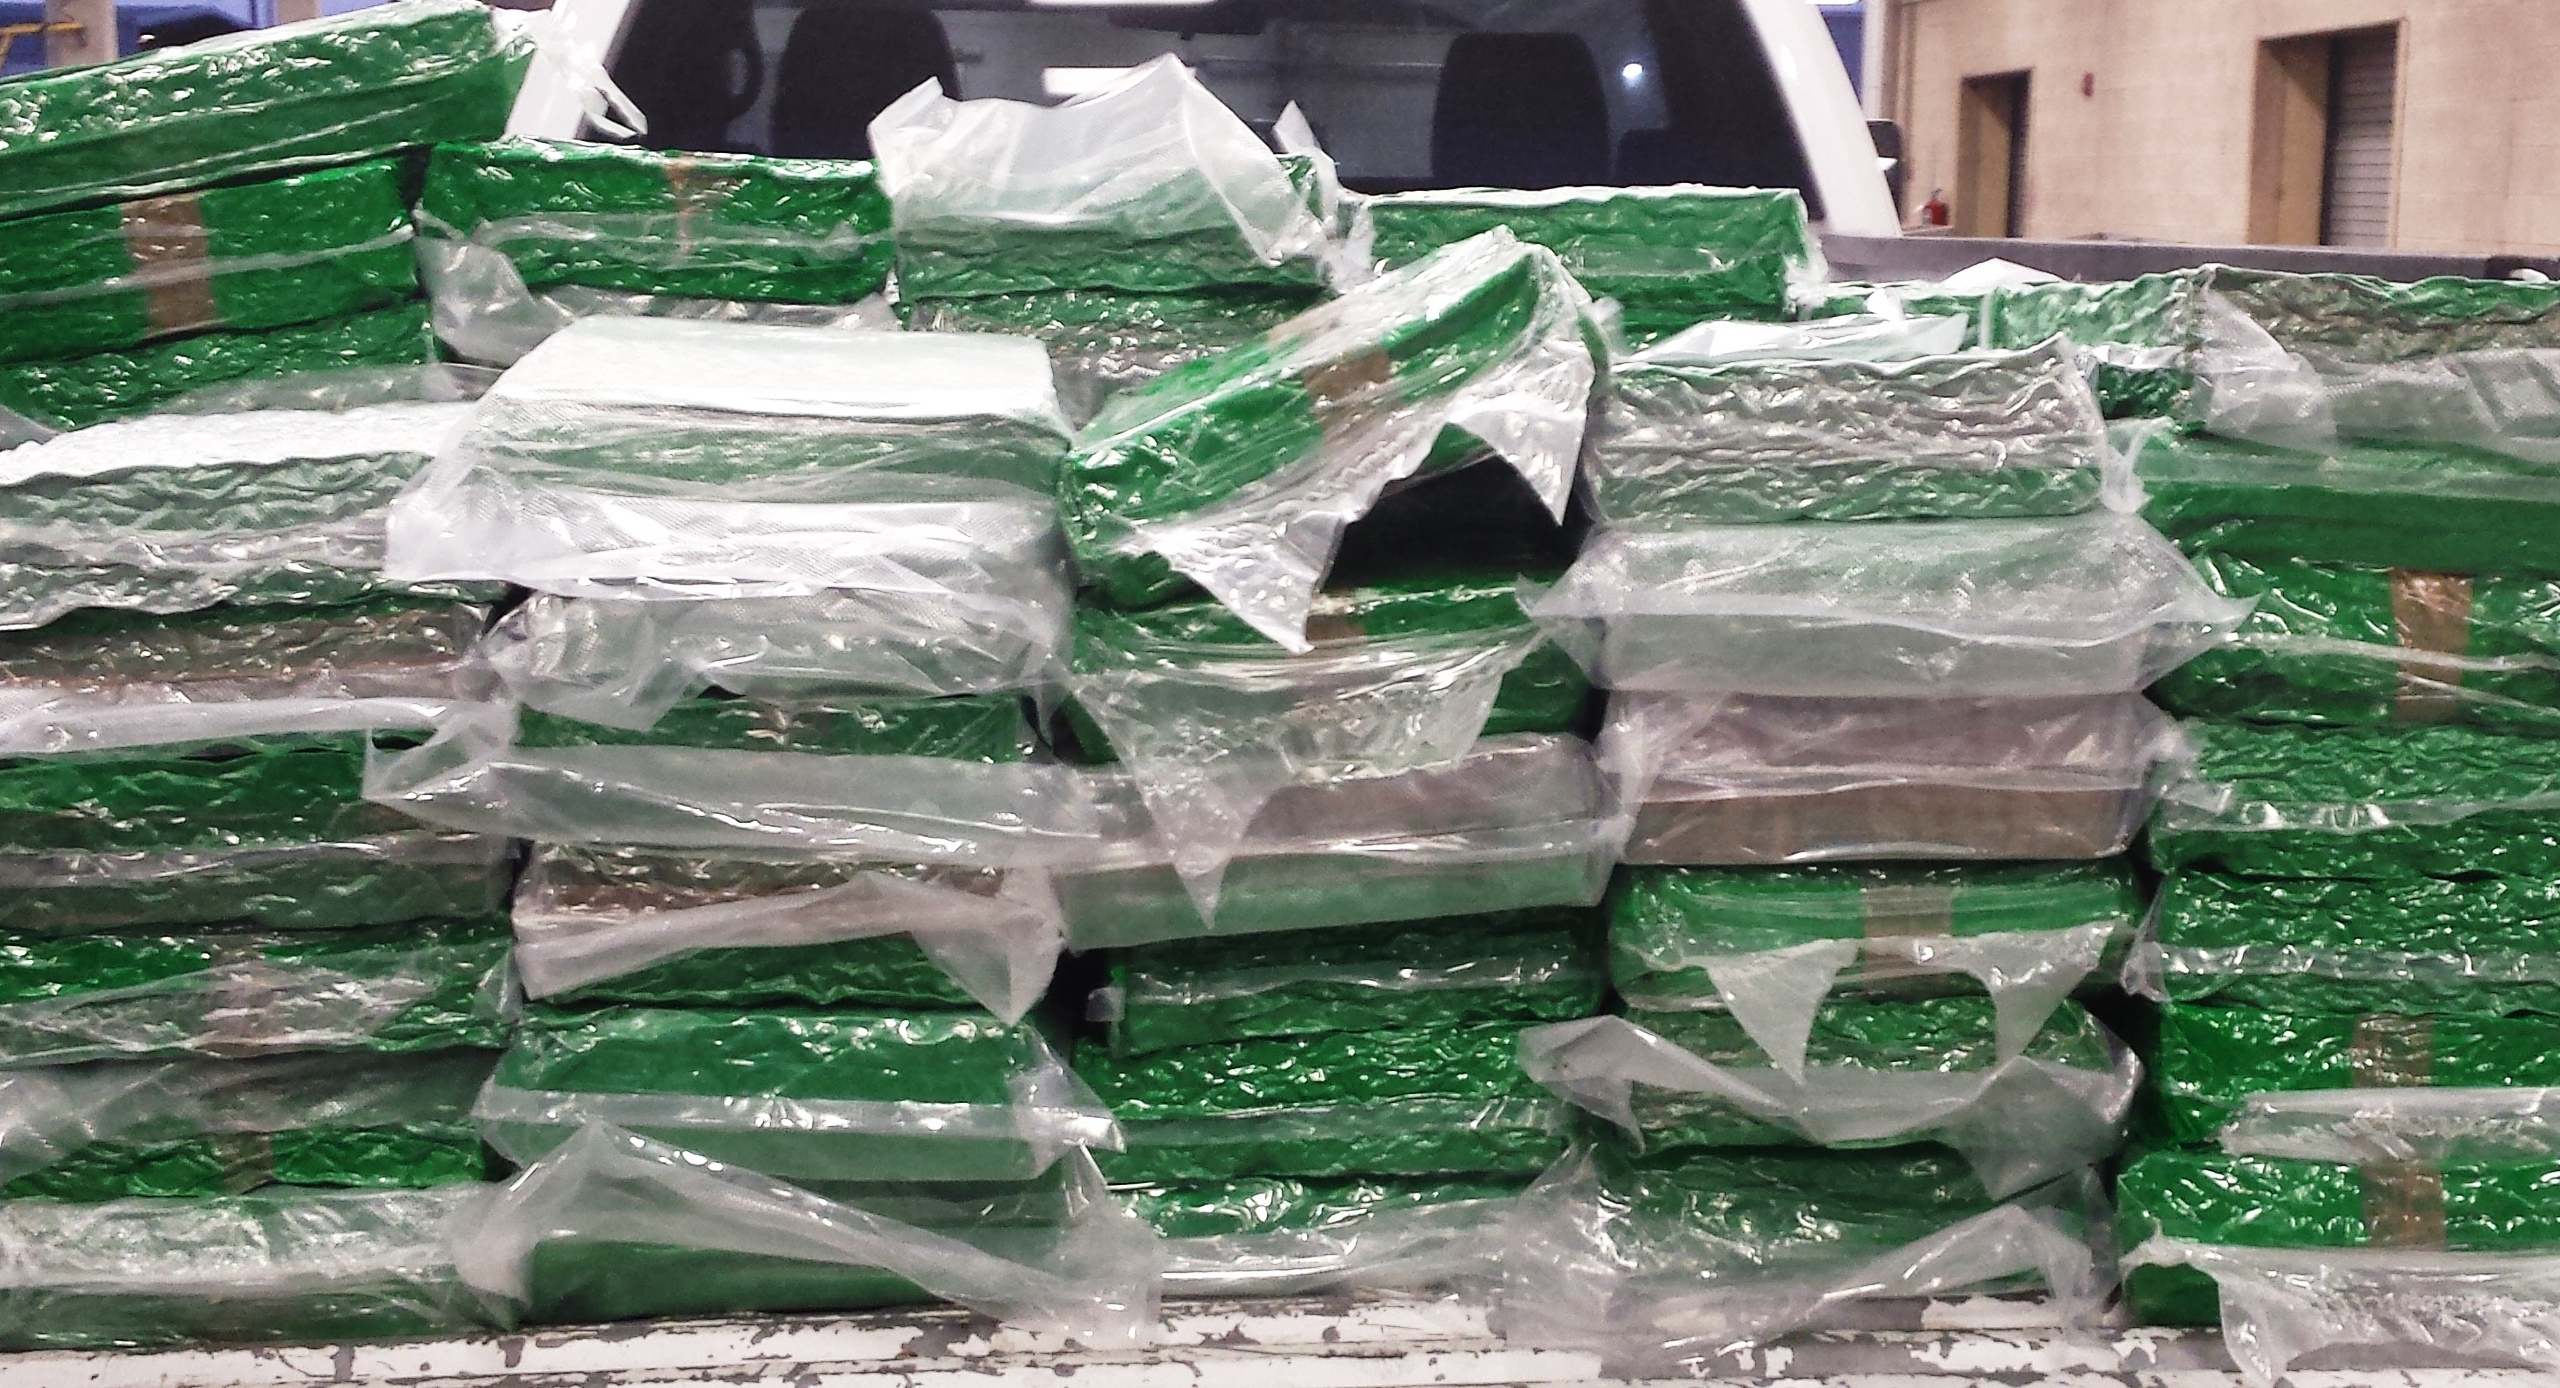 08052016 Pharr MJ in lime shipment 2, Courtesy Hidalgo CBP_1470858503103.JPG